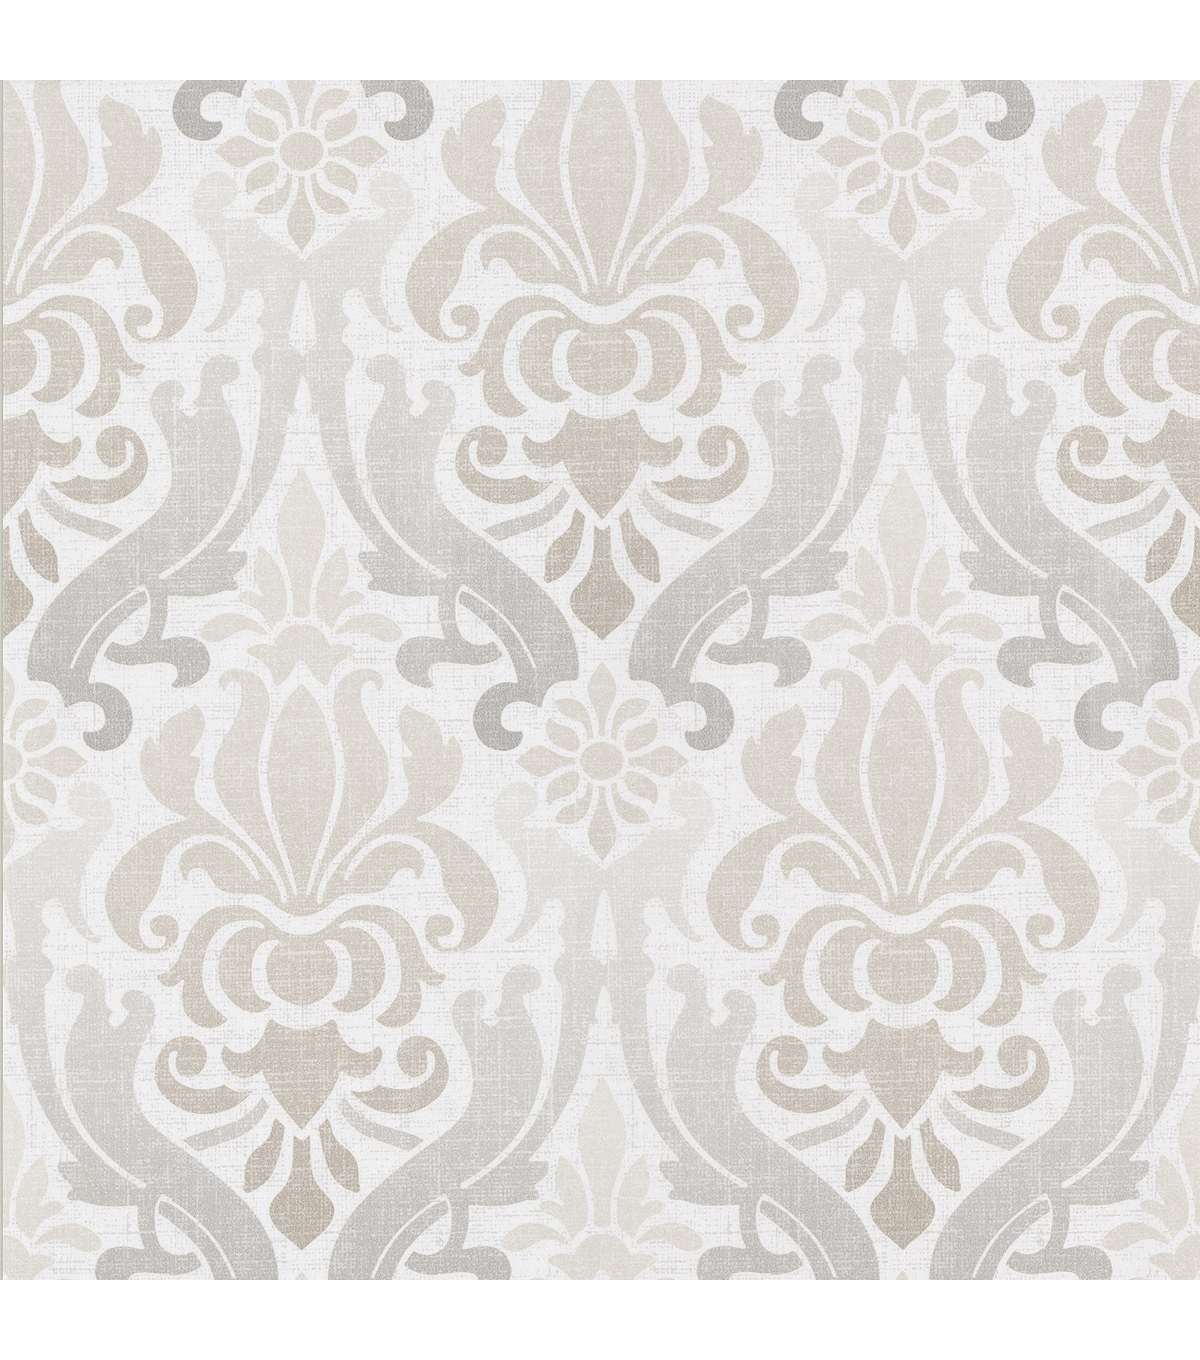 Aquitaine Light Grey Nouveau Damask  Wallpaper Sample